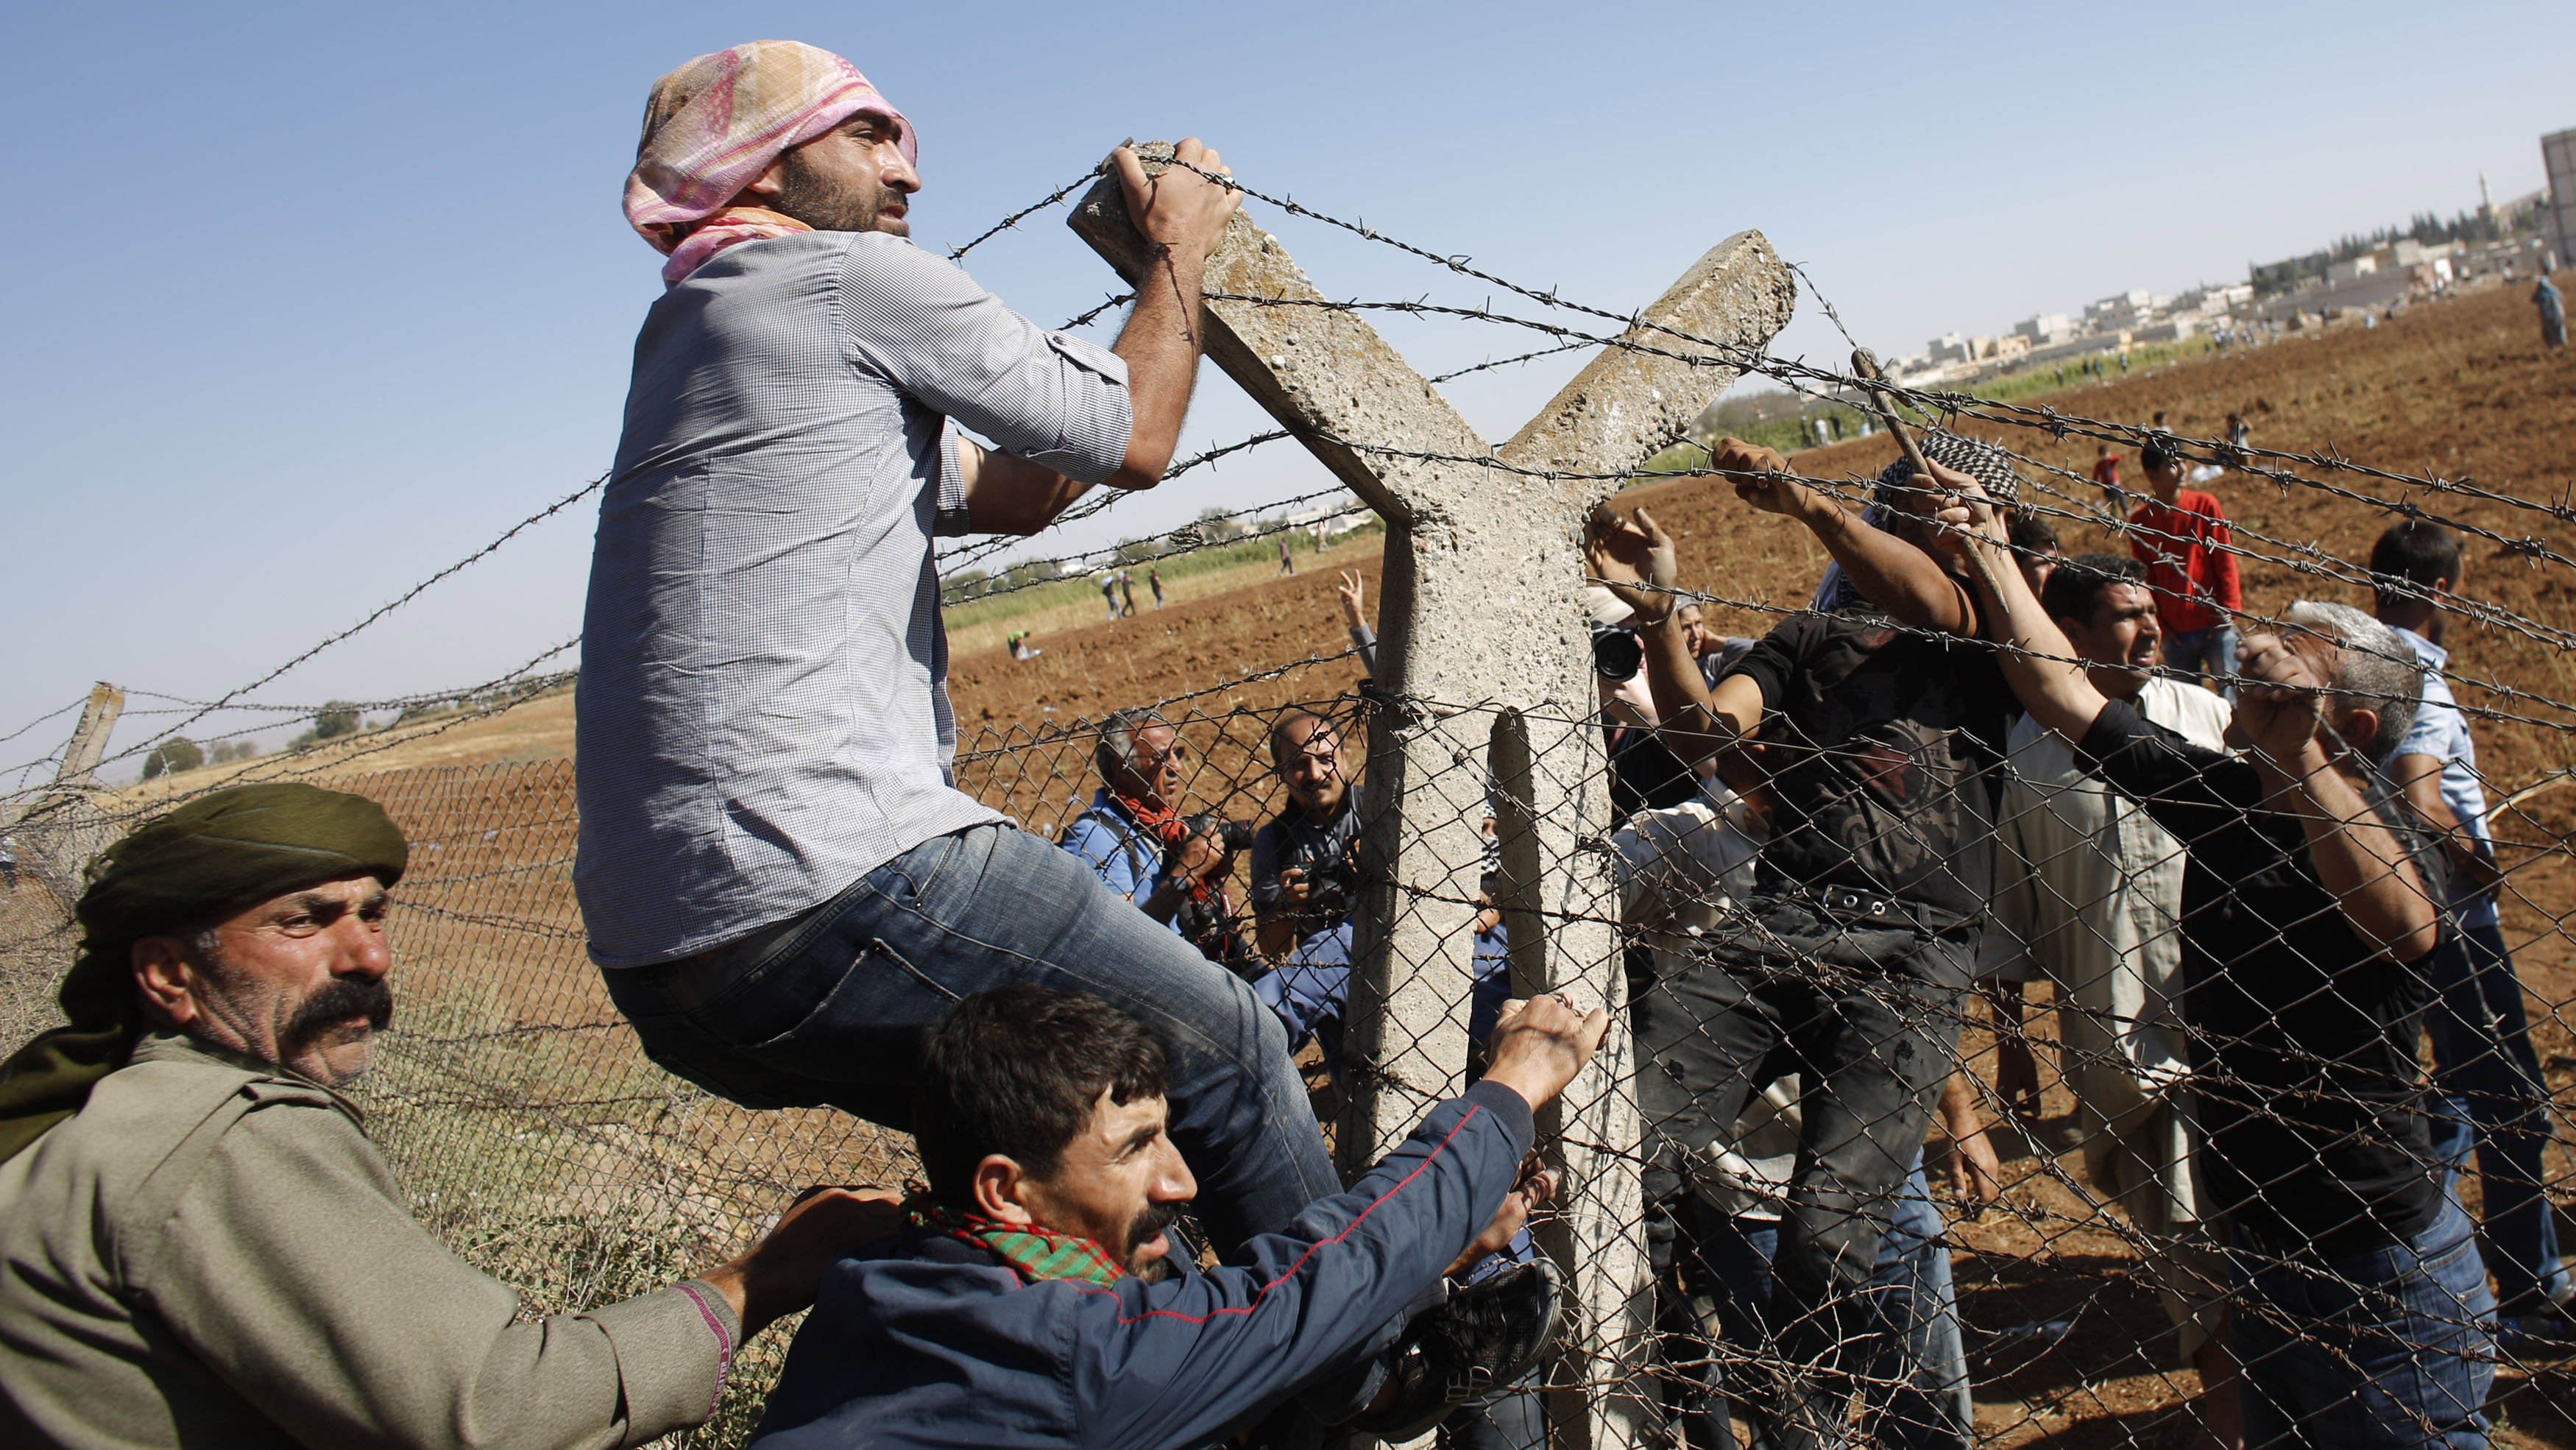 DATE IMPORTED:September 26, 2014Turkish and Syrian Kurds pull down a part of the Turkish-Syrian border fence, near the southeastern town of Suruc in Sanliurfa province September 26, 2014. Islamic State fighters tightened their siege of the strategic town of Kobani on Syria's border with Turkey on Friday, pushing back Kurdish forces and sending shells into Turkish territory, witnesses said. Several hundred unarmed protesters who had gathered on the Turkish side of the border in solidarity with the Syrian Kurds at one point broke through a barbed wire fence and rushed towards Kobani in an apparent bid to help defend it. The group, including pro-Kurdish politicians from Turkey, later gathered on a railway line on the Syrian side of the border, clashing with Turkish security forces who fired tear gas and were initially reluctant to let them back in.